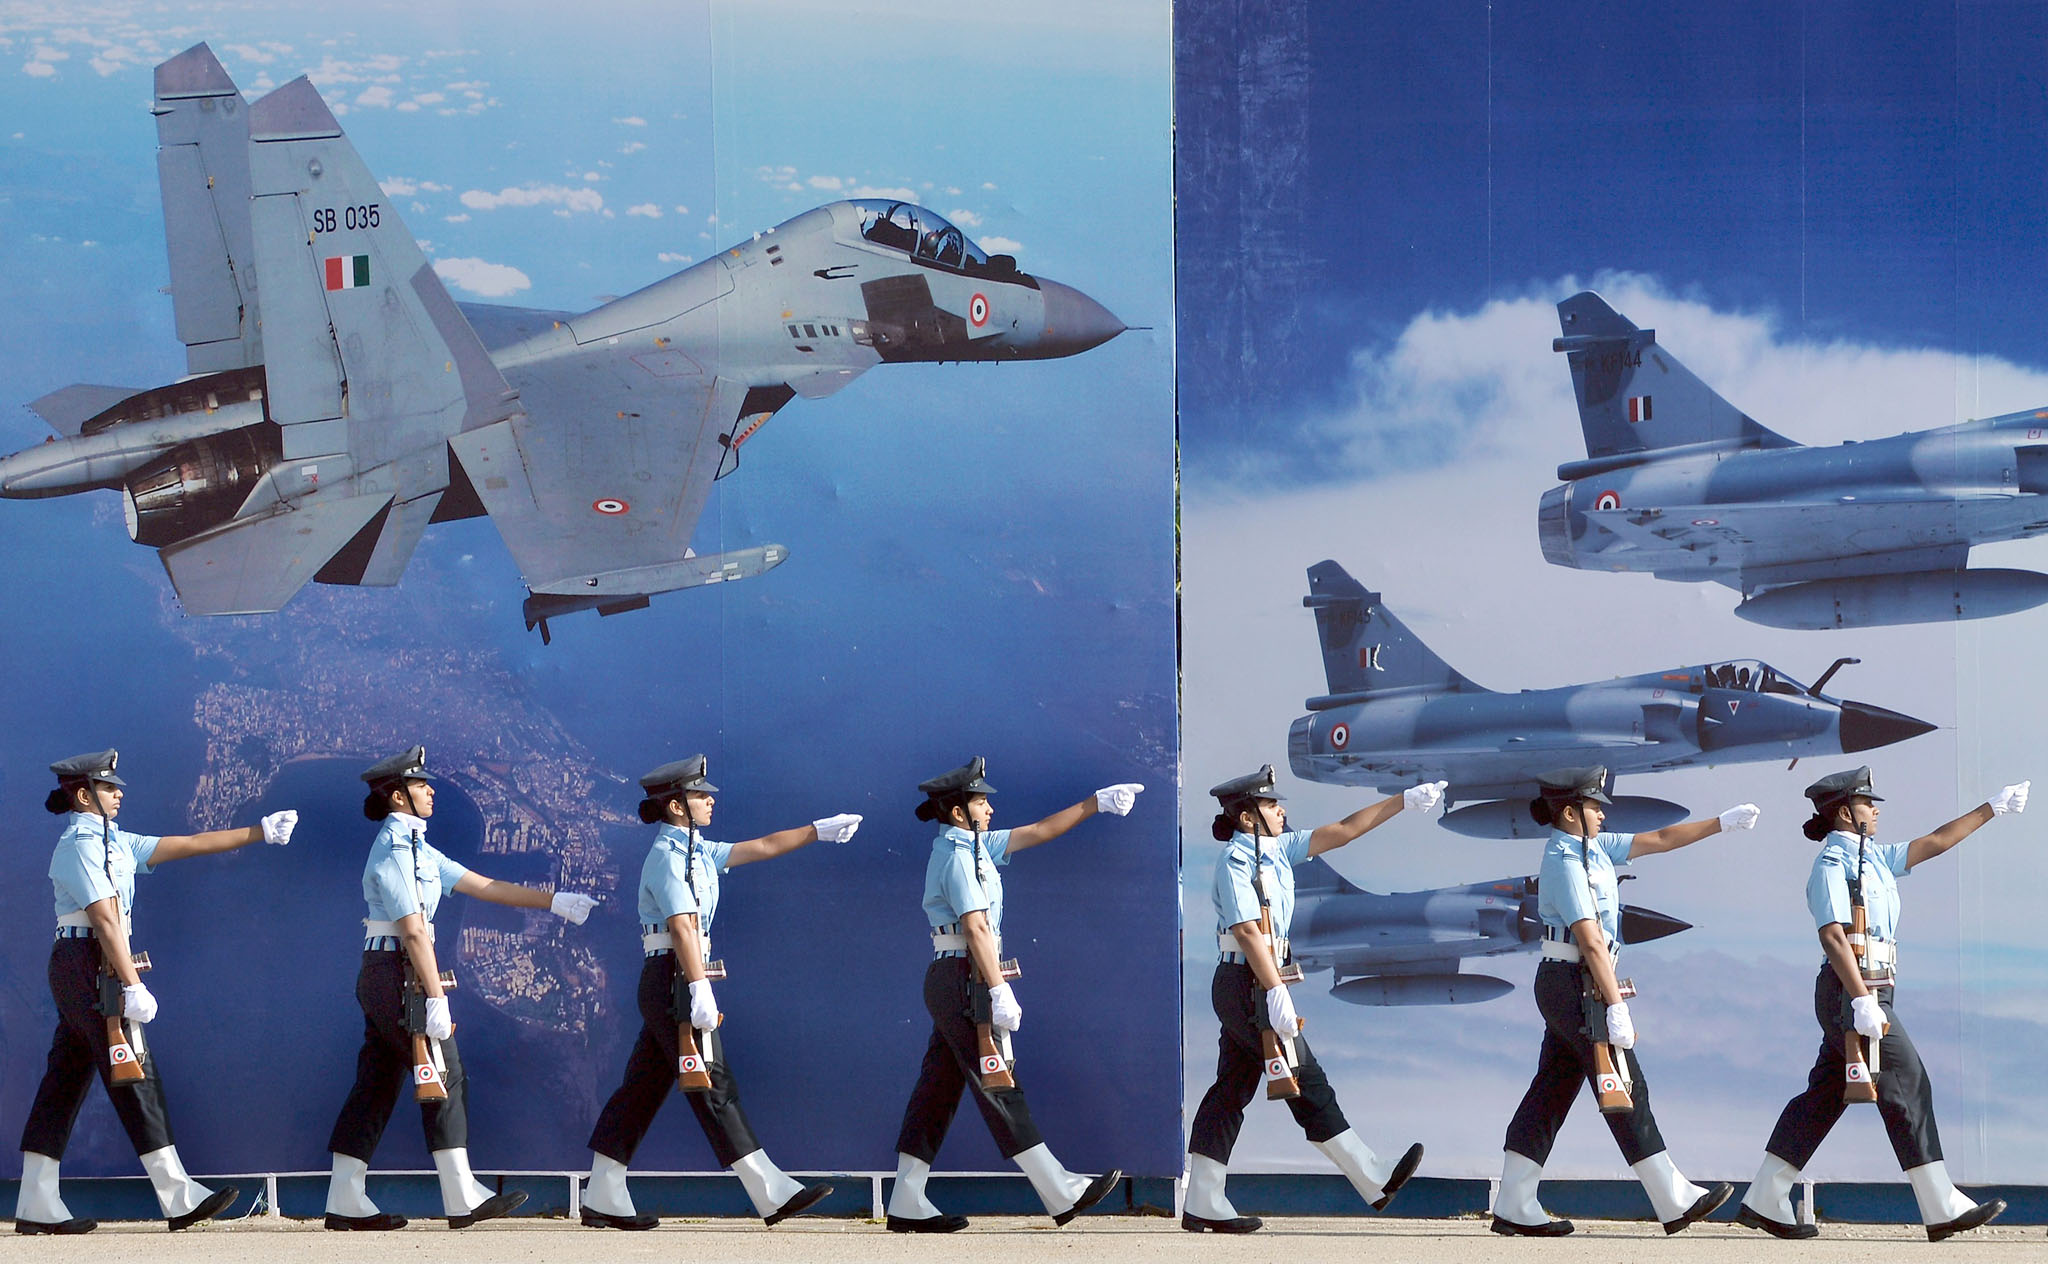 Aeronautical Engineers of the Air Force Technical College (AFTC) of the Indian Air Force take part in a passing out parade in Bangalore on December 4, 2015.   The Parade marks the culmination of 74 weeks of training in Aeronautical Engineering, Military Leadership, Managerial Skills and Ethos of an air warrior. The passing out batch comprised 136 officers, including 37 women and 11 international officers. AFP PHOTO/Manjunath KIRANMANJUNATH KIRAN/AFP/Getty Images